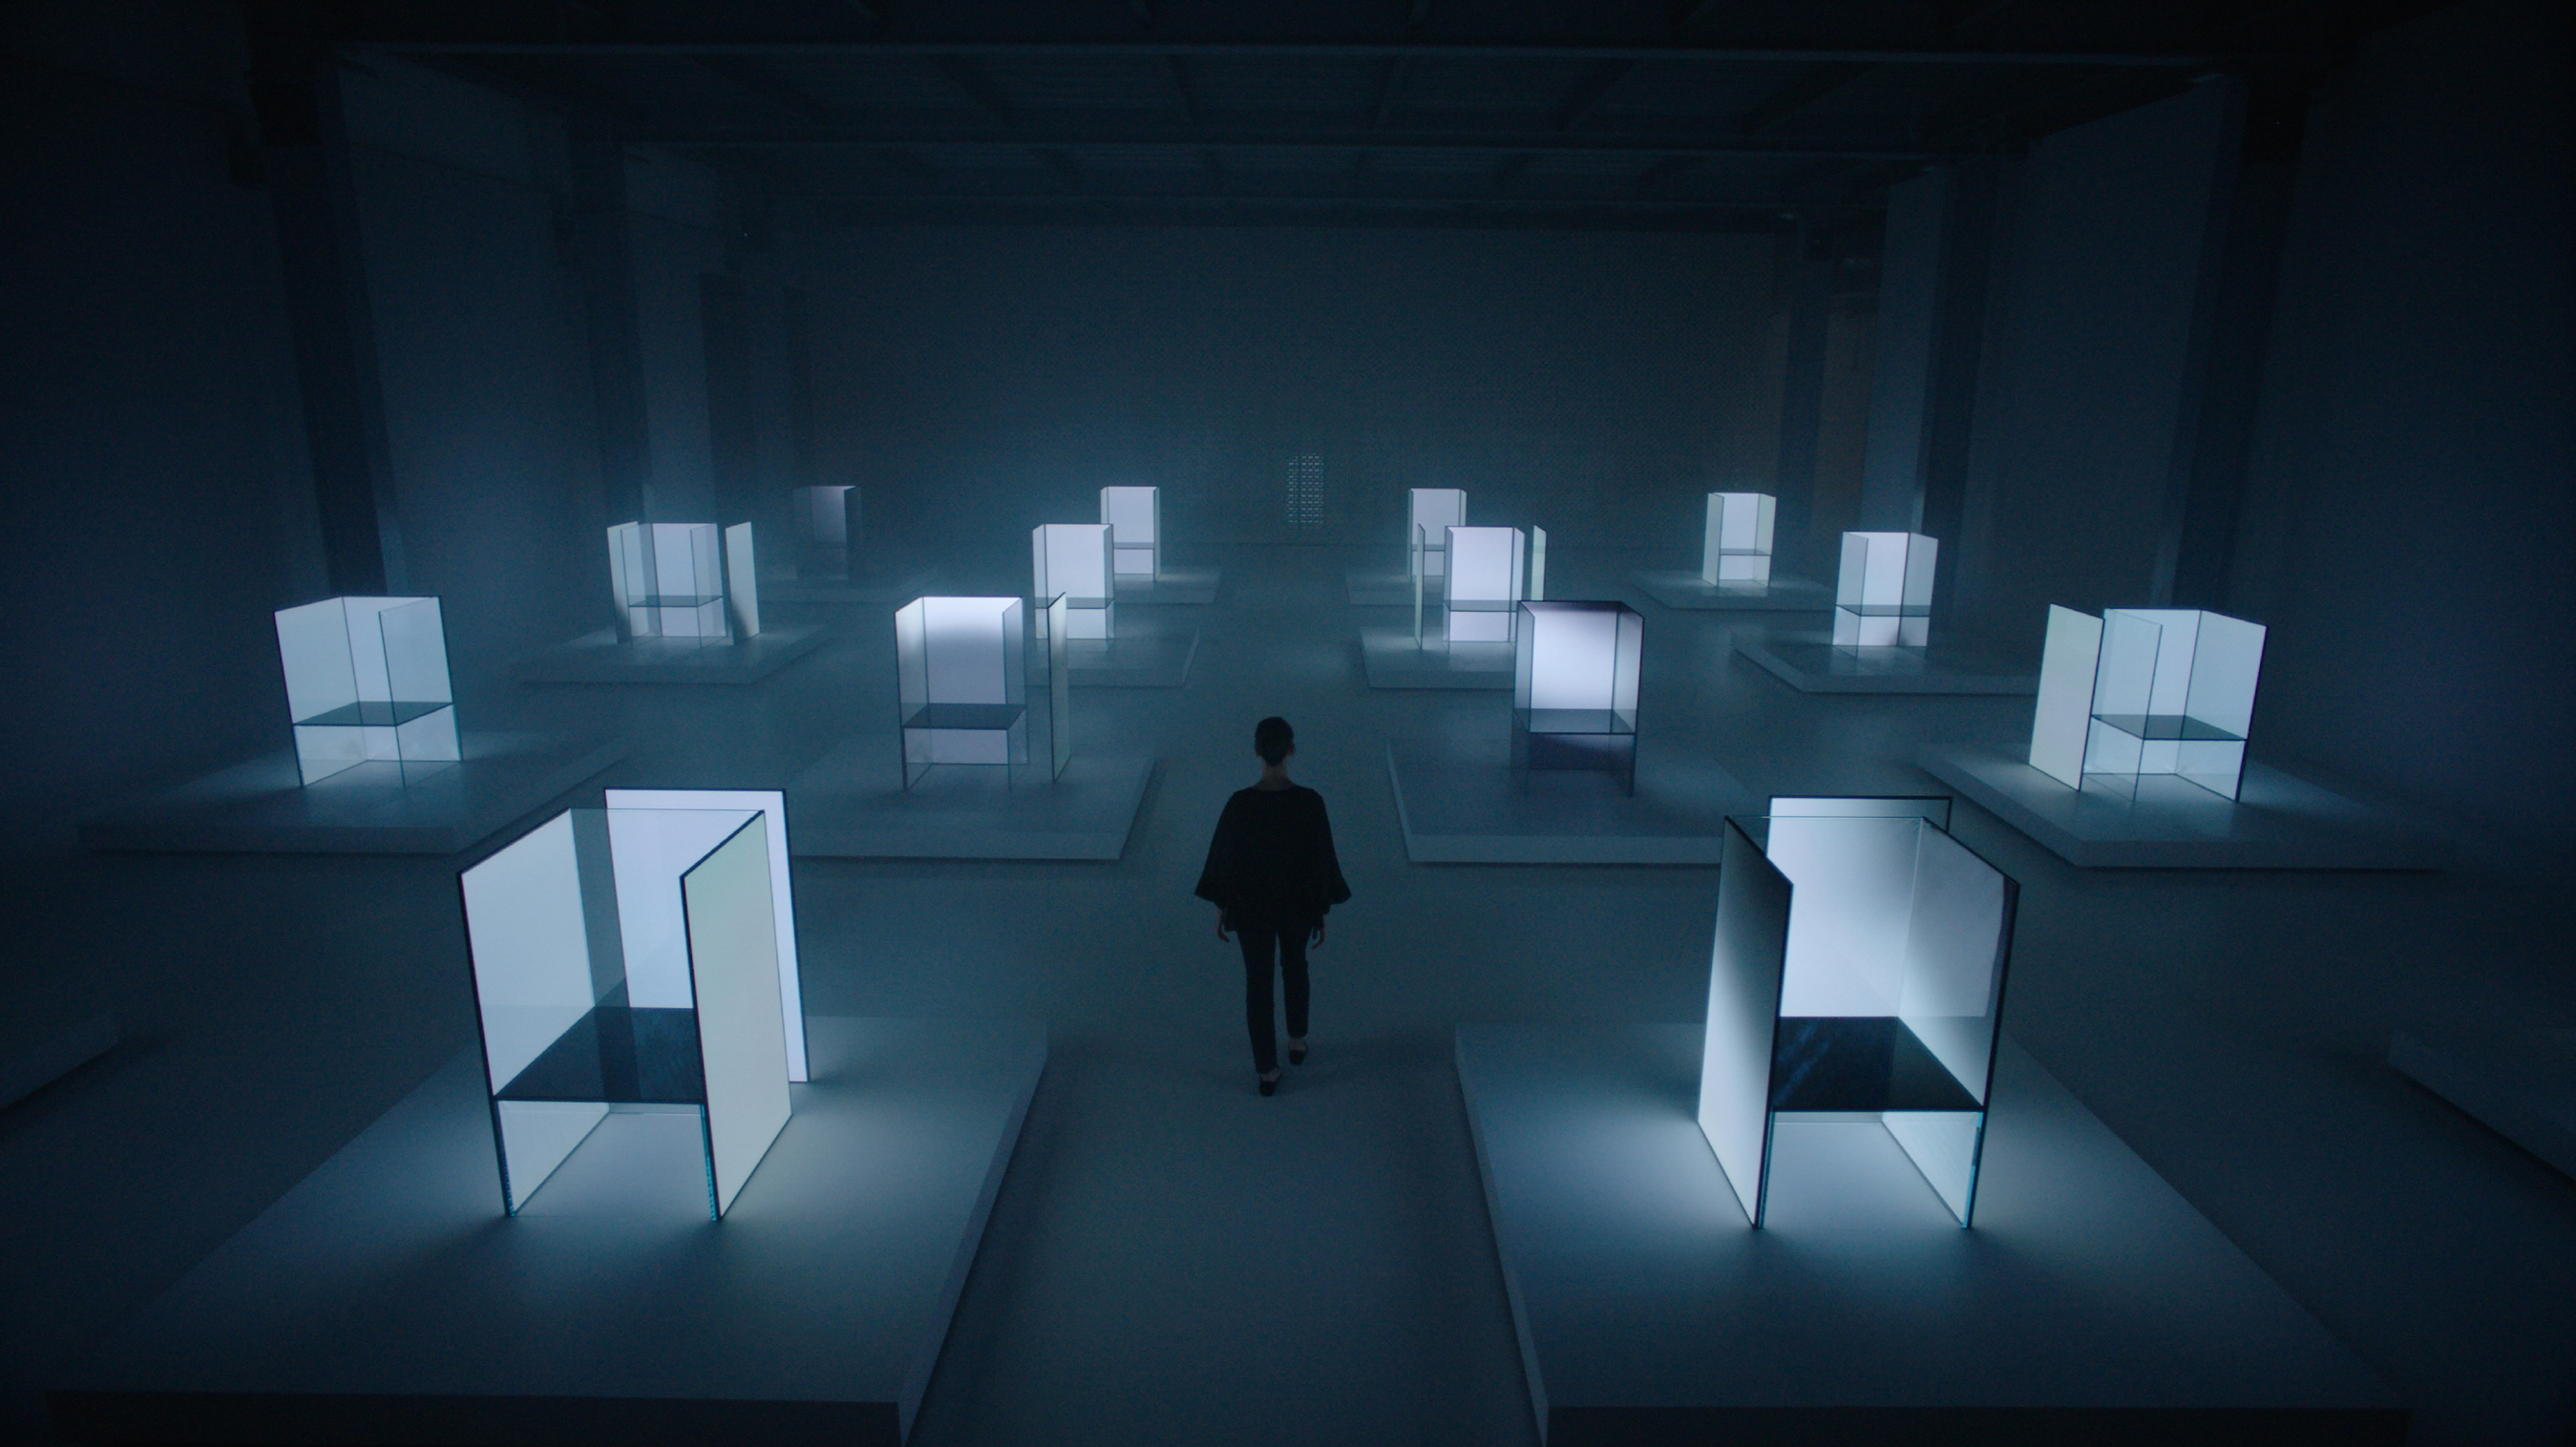 Tokujin Yoshioka and LG fashioned an innovative exhibition at Milano Design Week out of light and advanced display tech